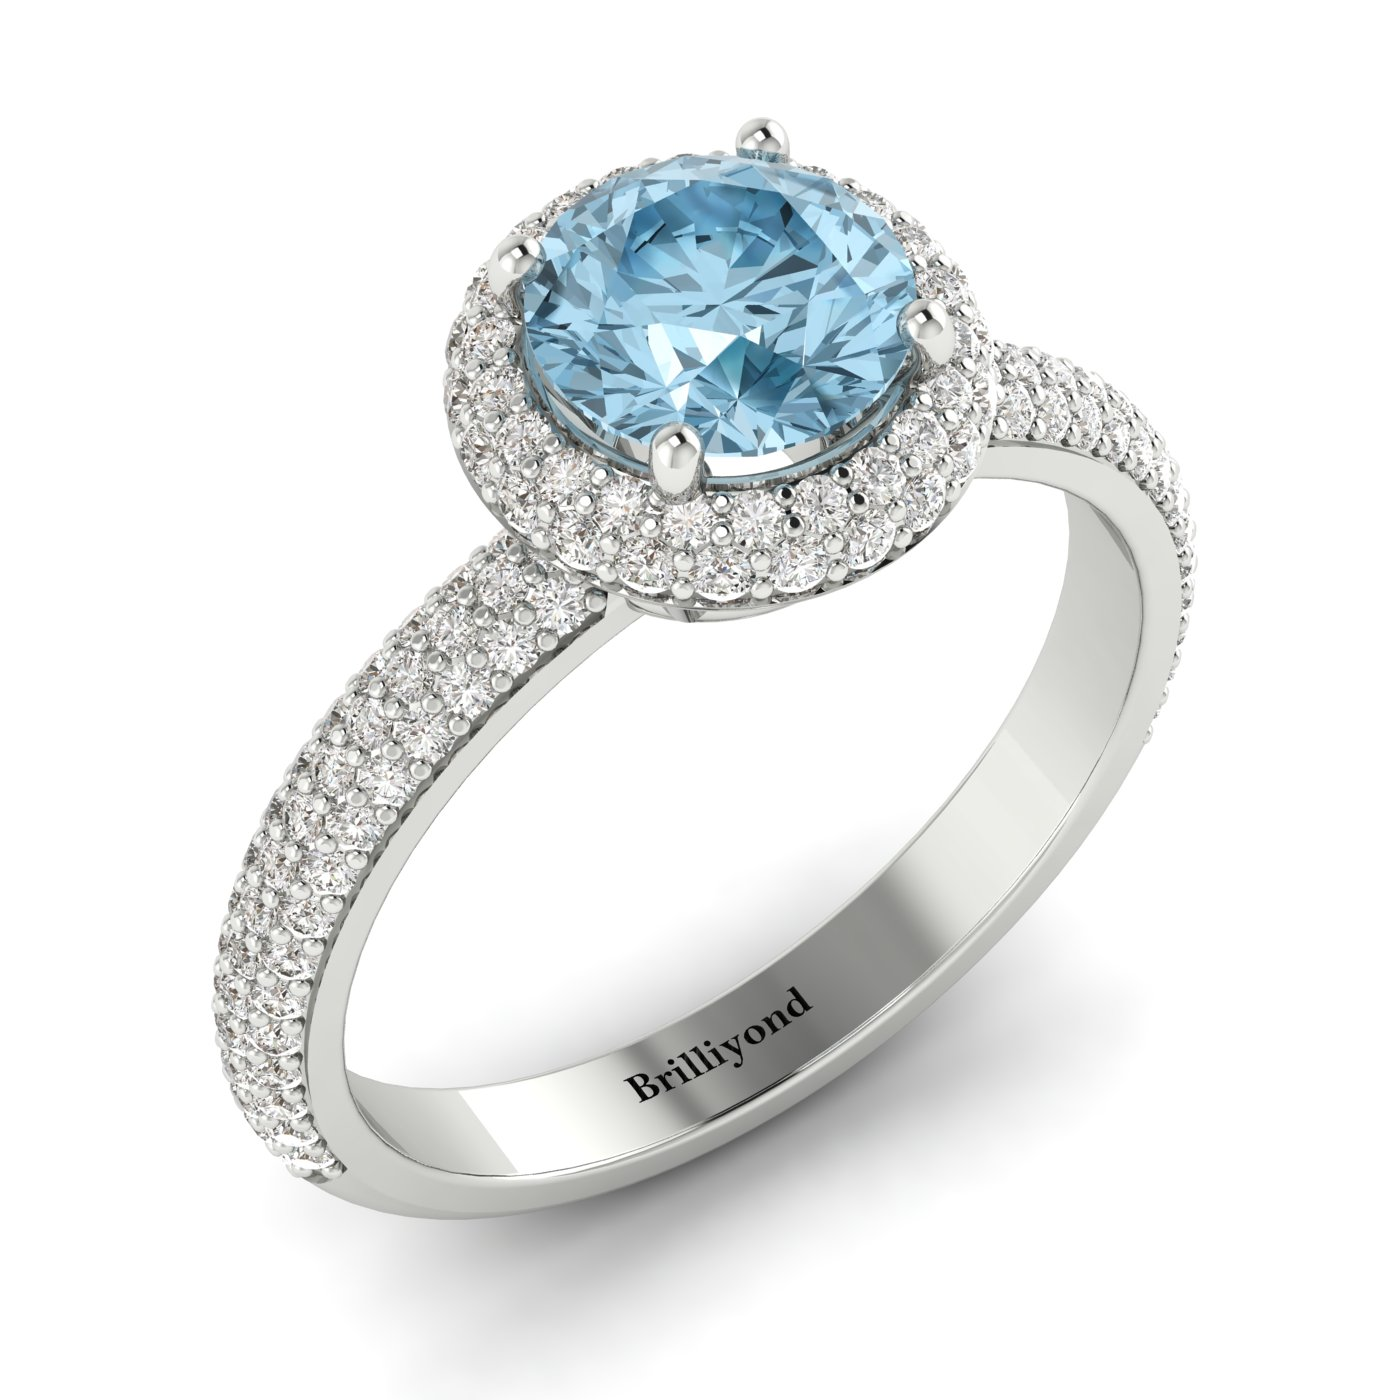 Aquamarine and Diamonds Double Halo Whirlpool Engagement Ring from Brilliyond